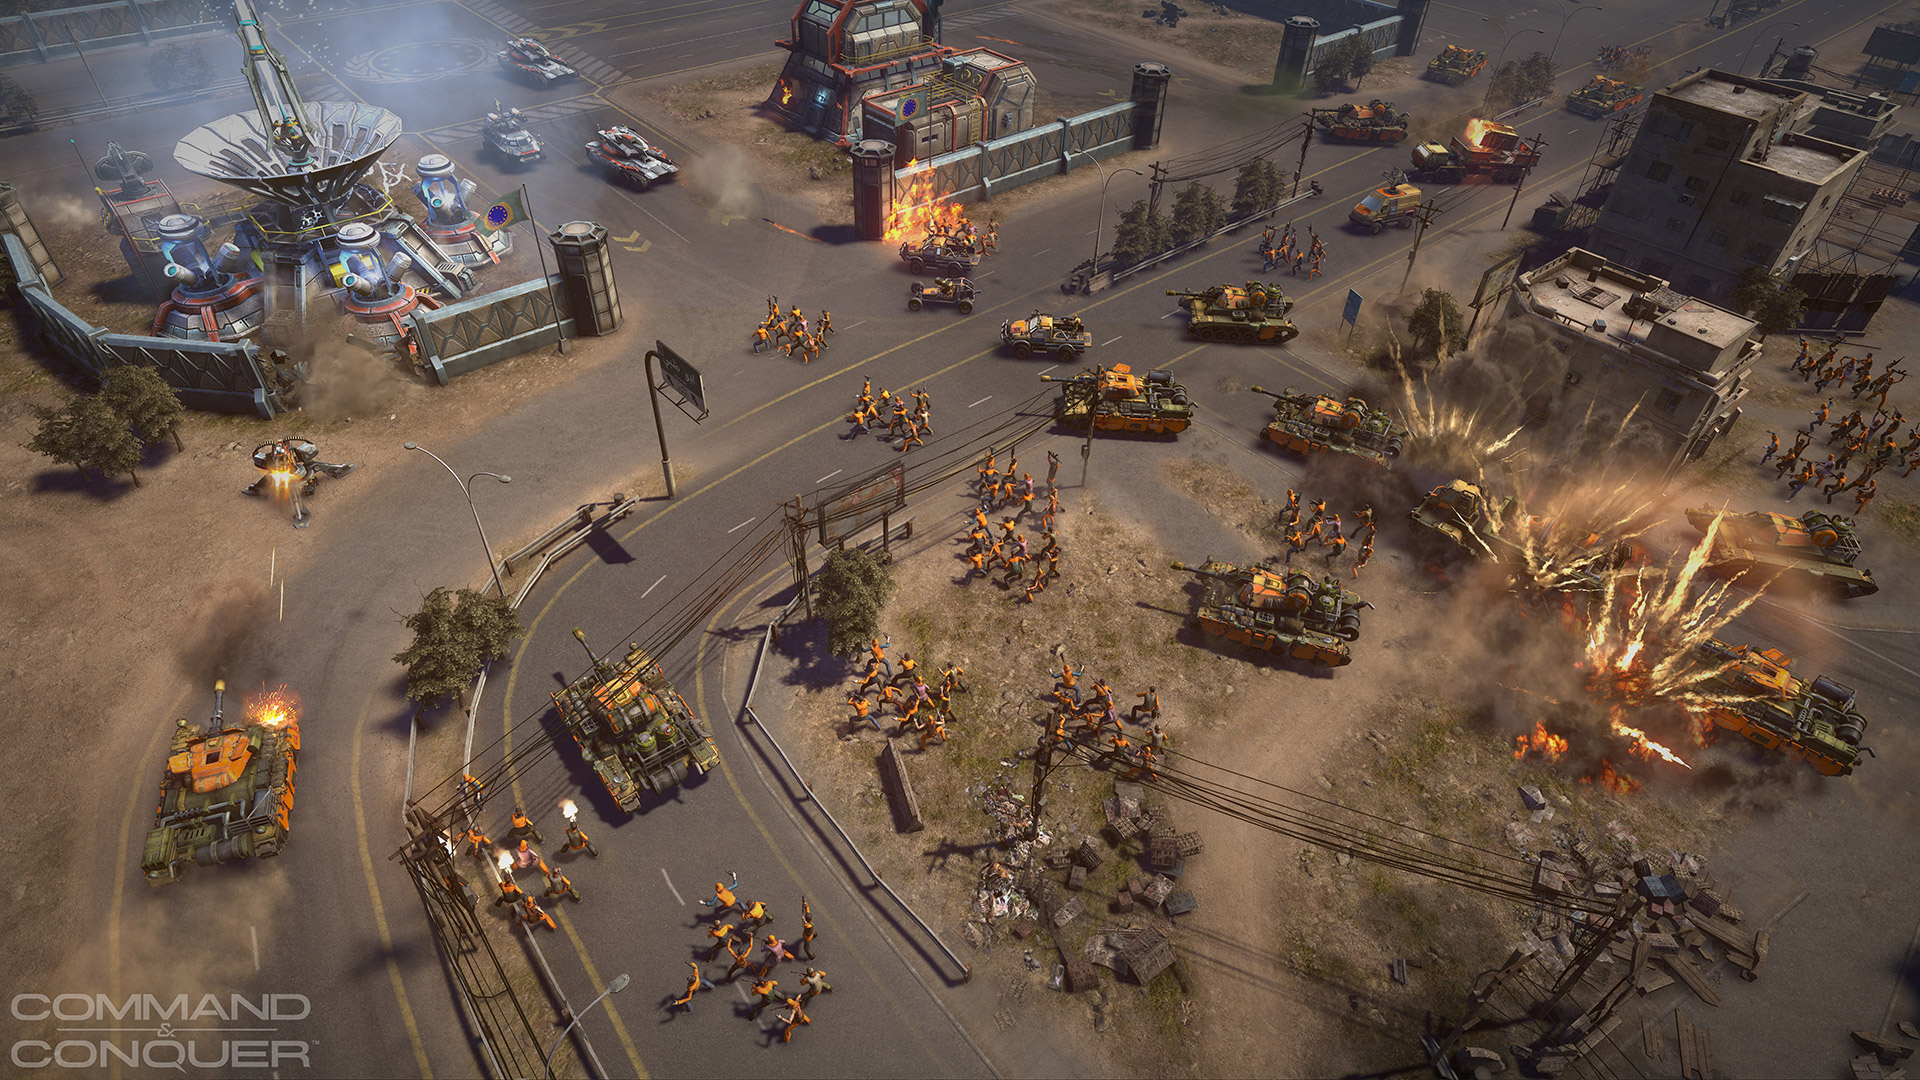 EA's planning to remaster some classic Command & Conquer games on PC screenshot